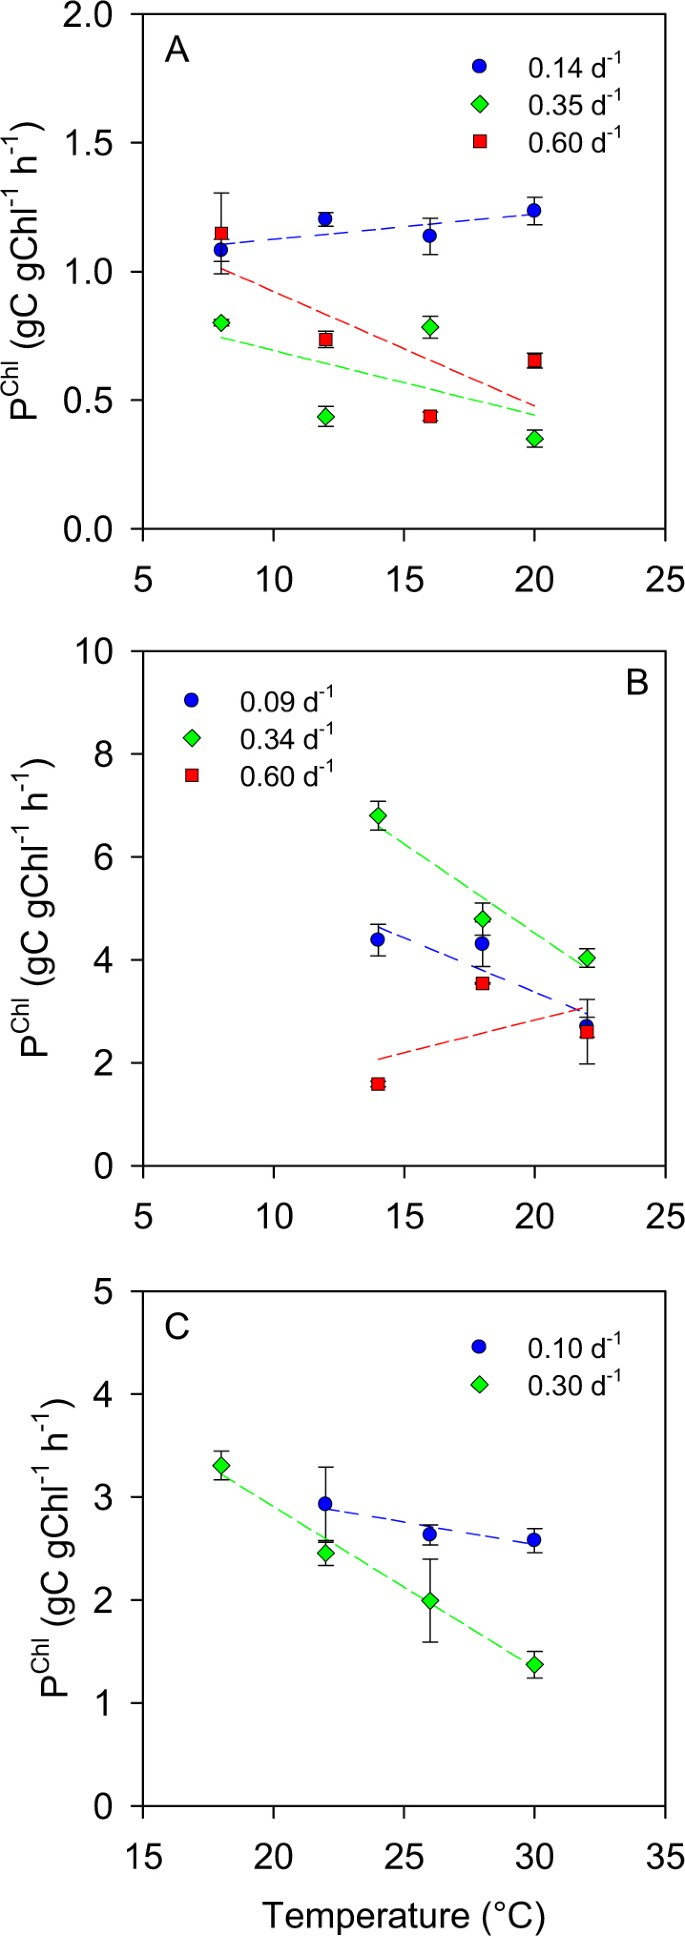 Nutrient limitation suppresses the temperature dependence of